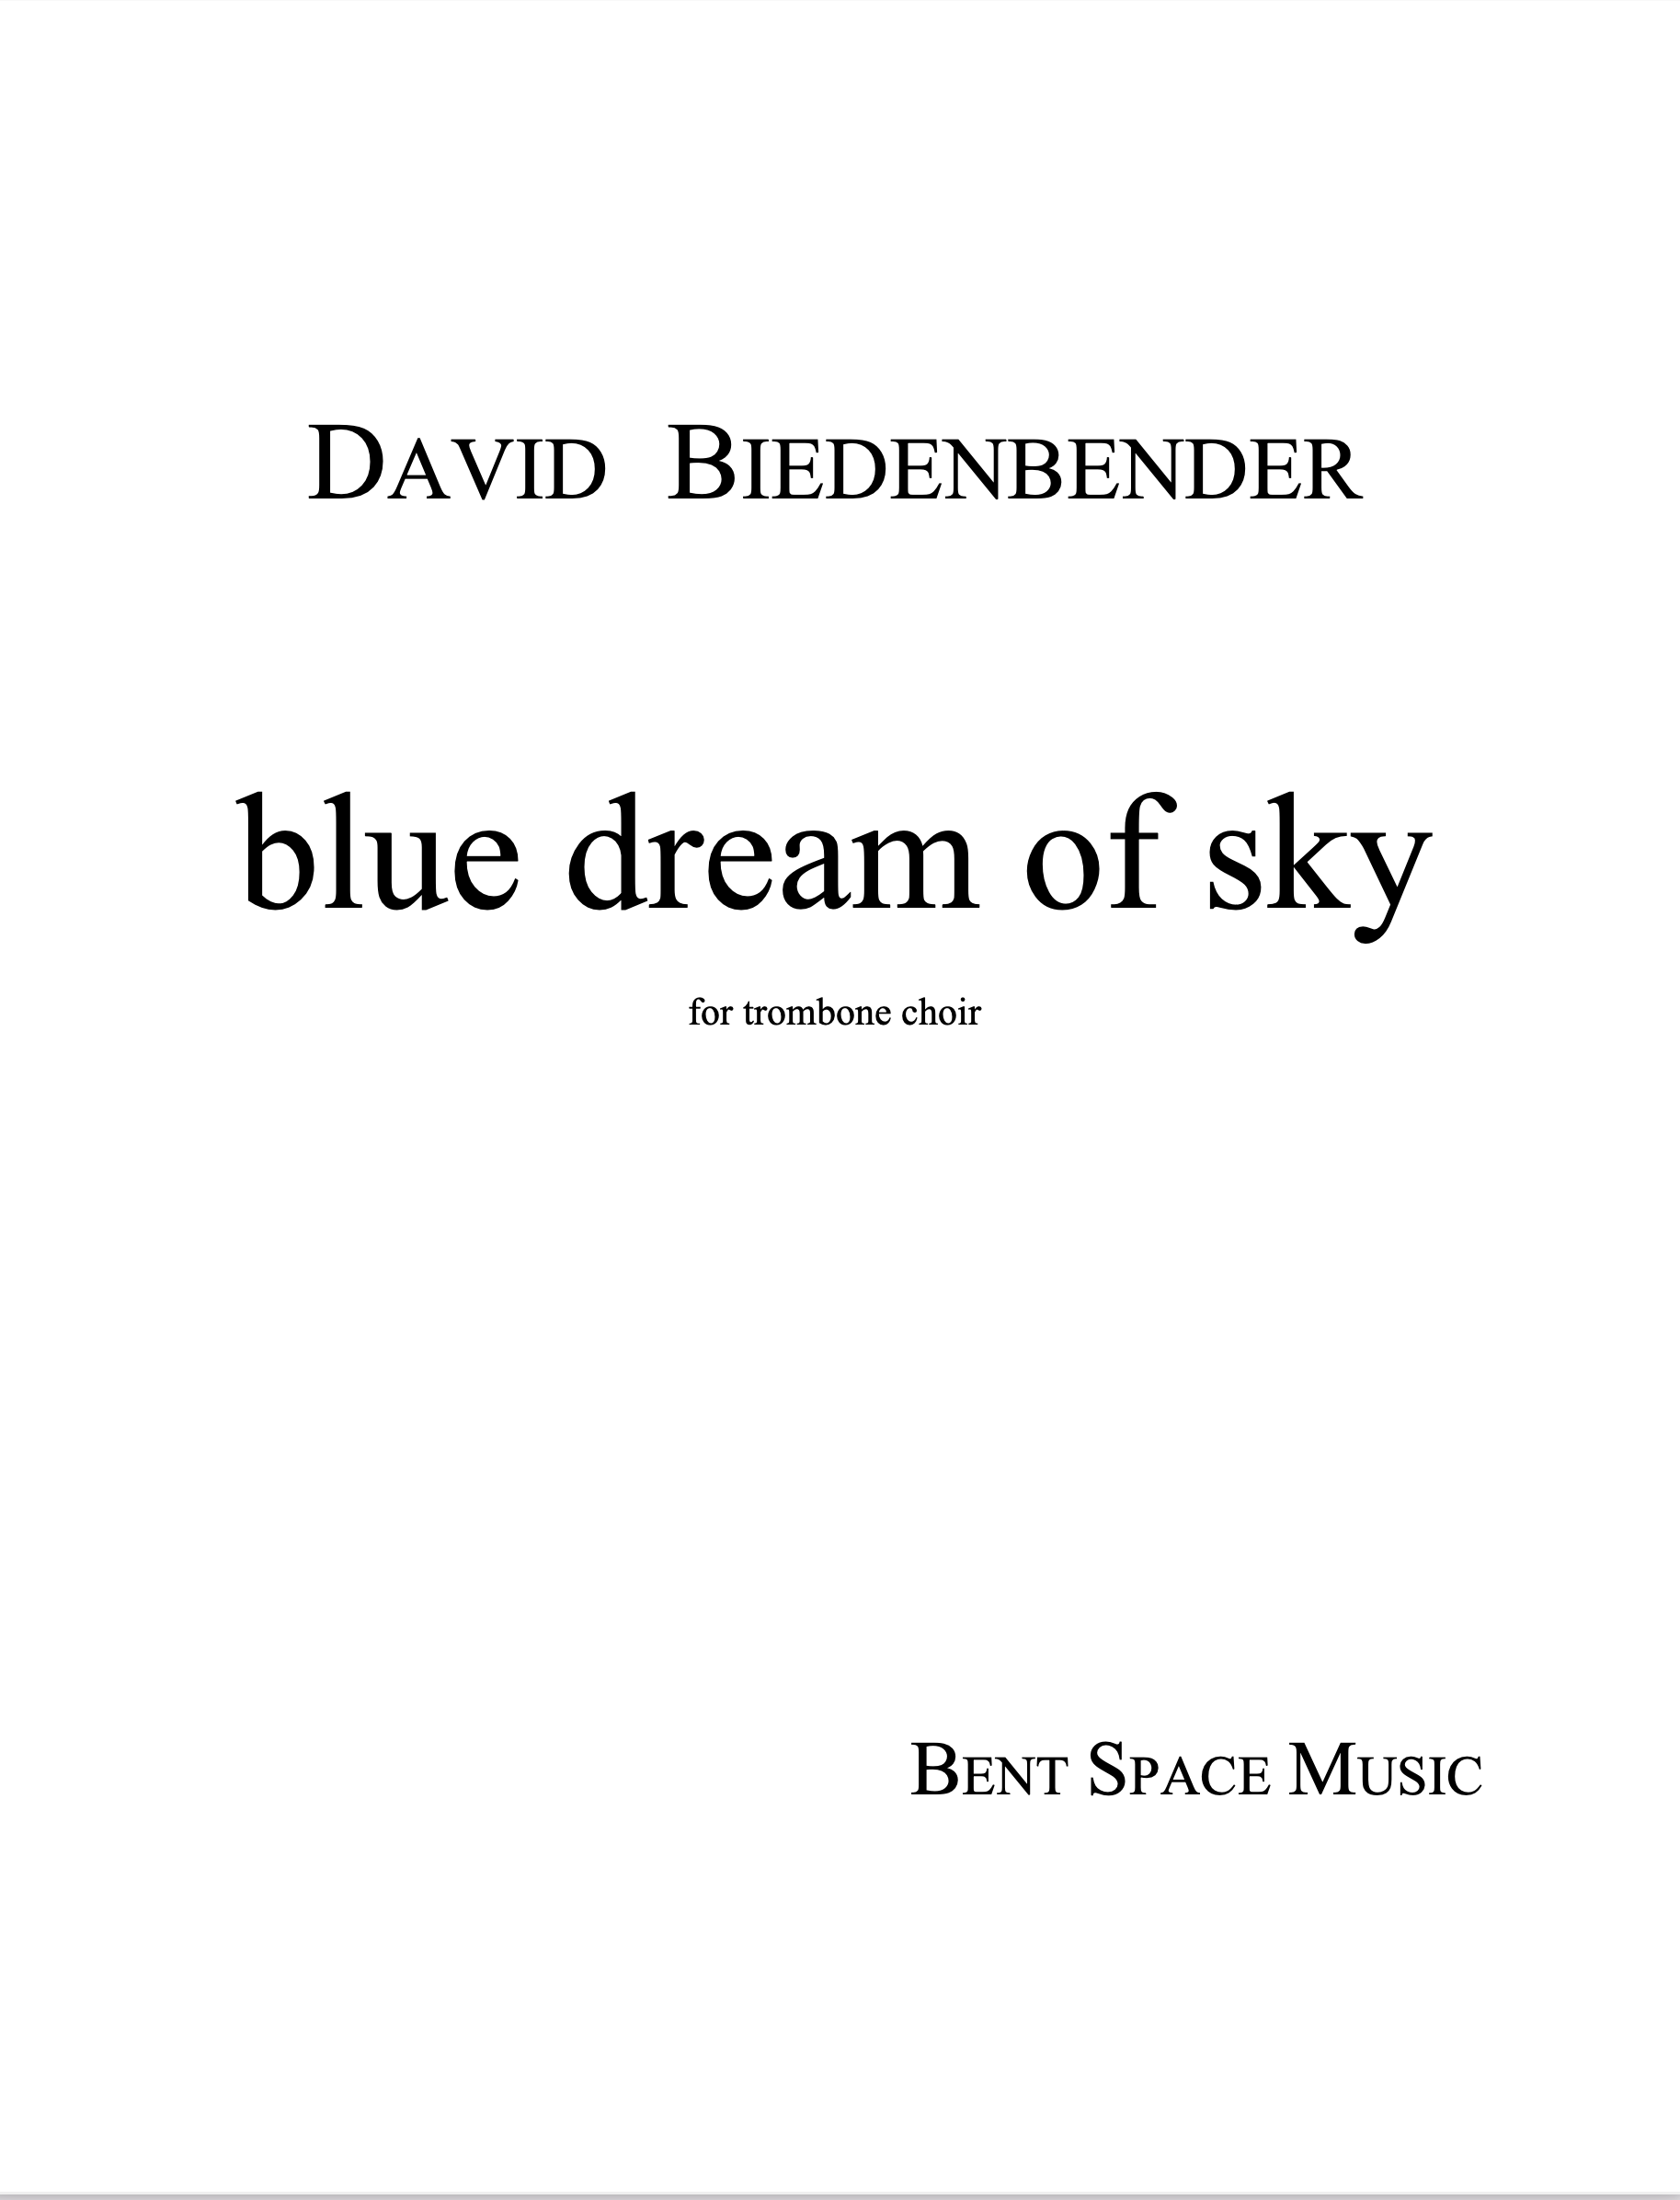 Blue Dream Of Sky by David Biedenbender